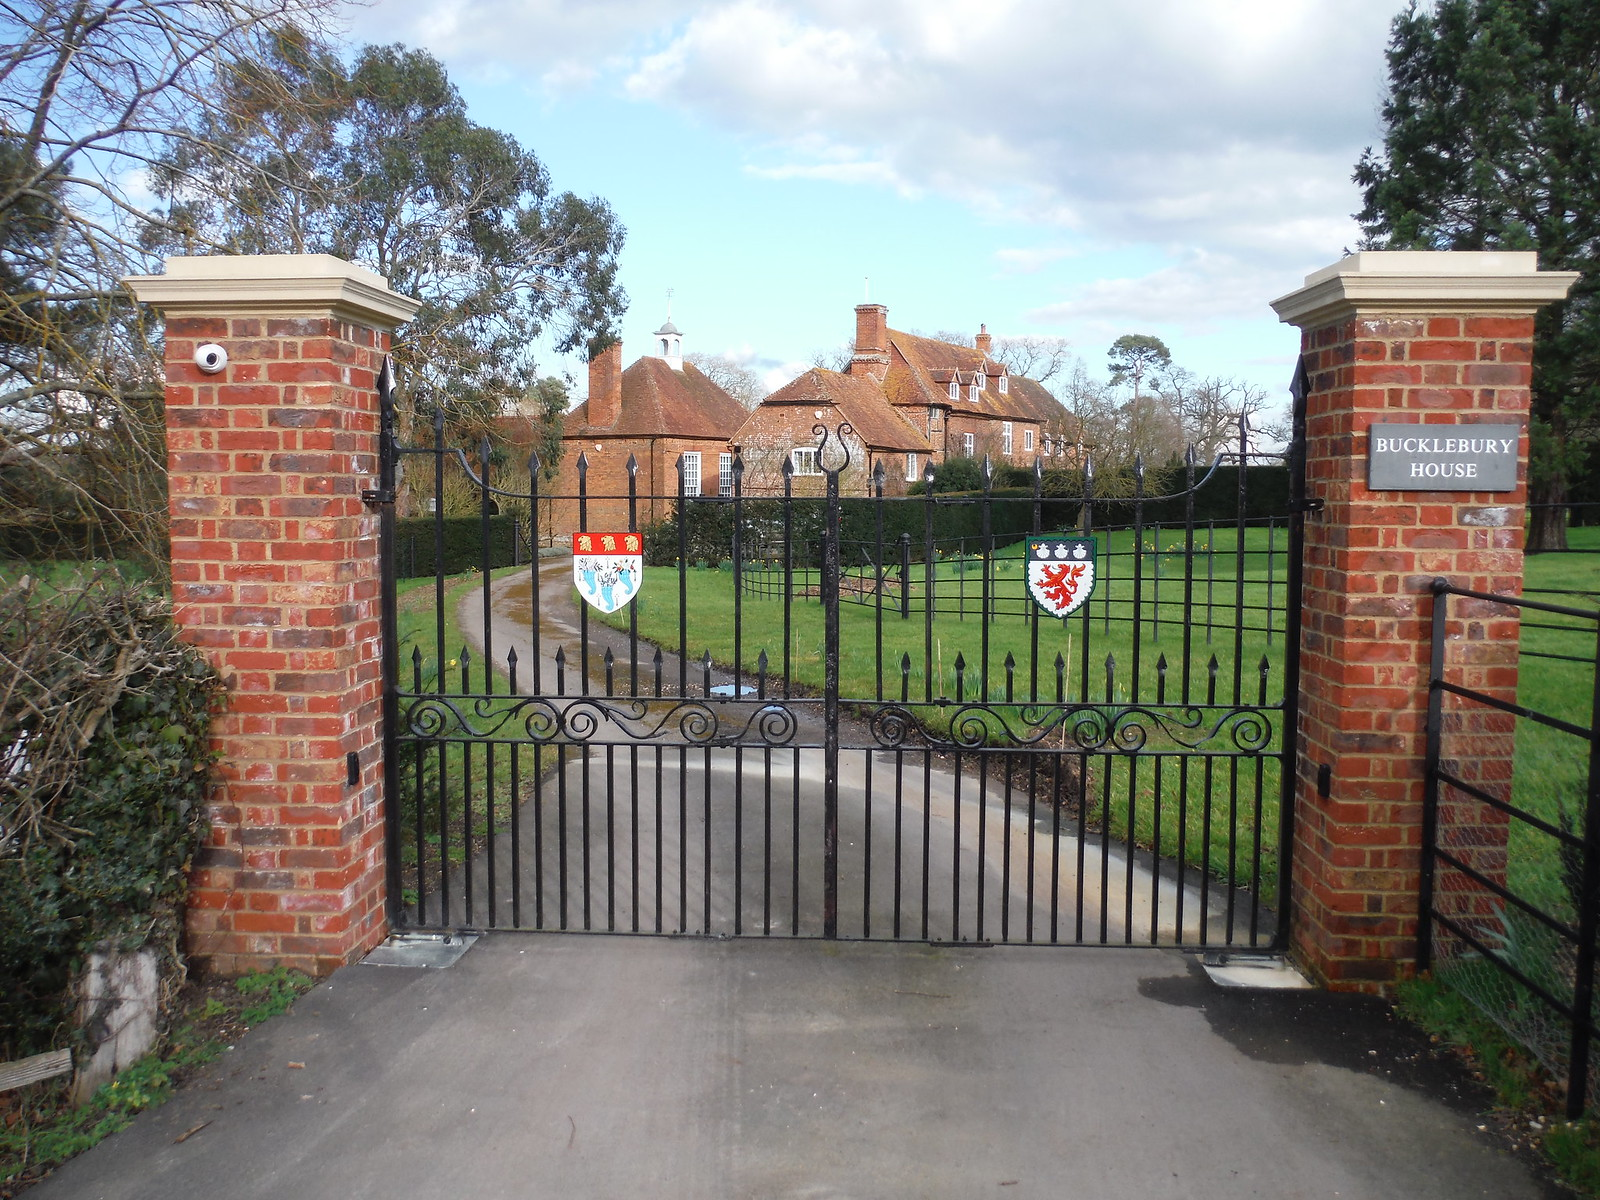 Gate to Bucklebury House SWC Walk 117 Aldermaston to Woolhampton (via Stanford Dingley)